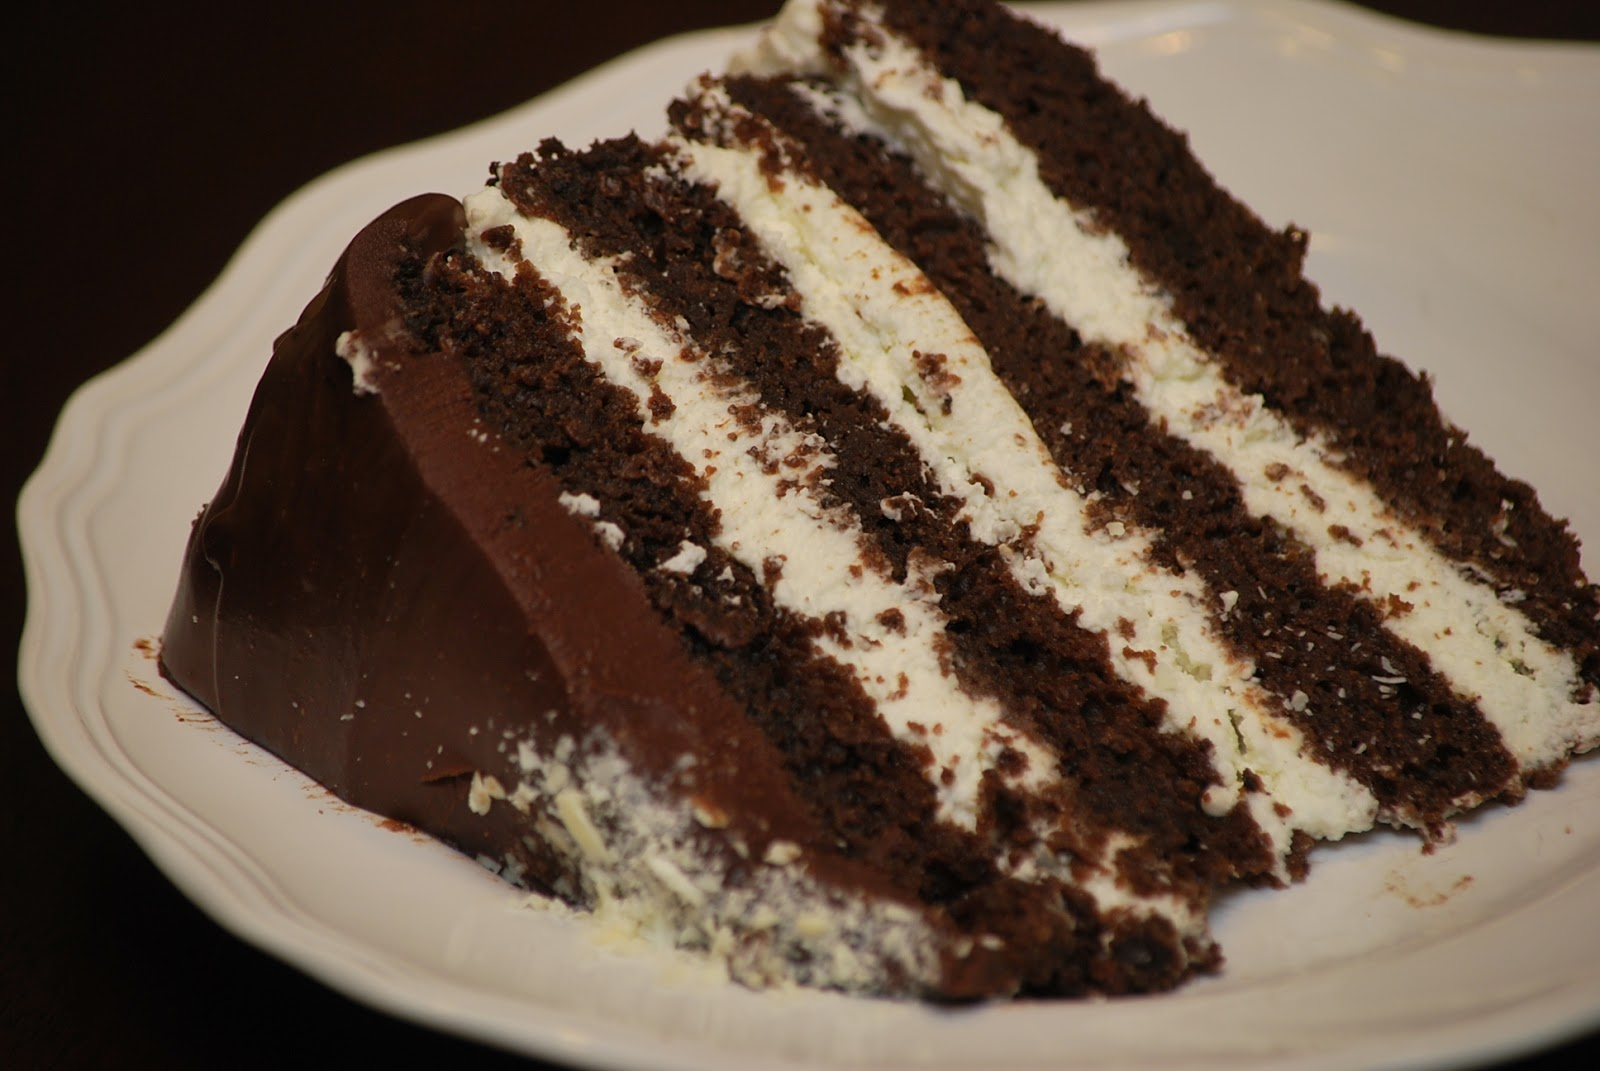 Cake With Cream Filling : My story in recipes: Dark Chocolate Birthday Cake